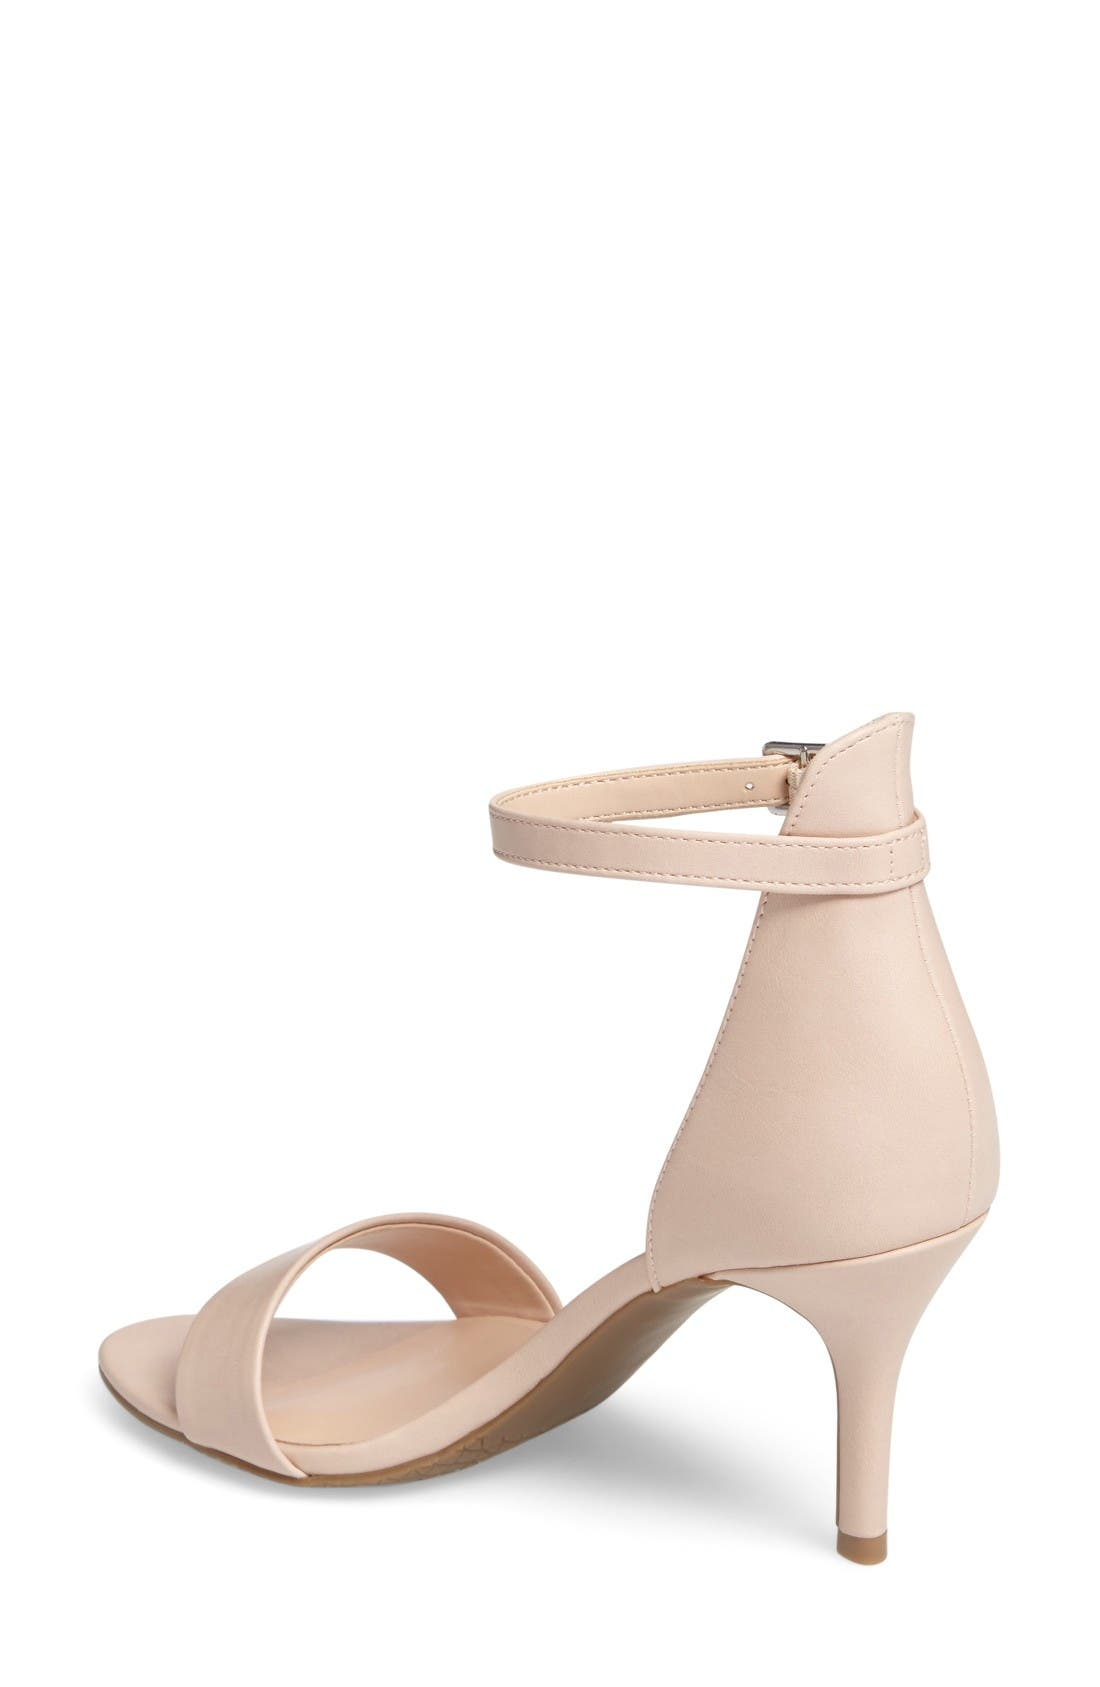 'Luminate' Open Toe Dress Sandal,                             Alternate thumbnail 2, color,                             Blush Faux Leather